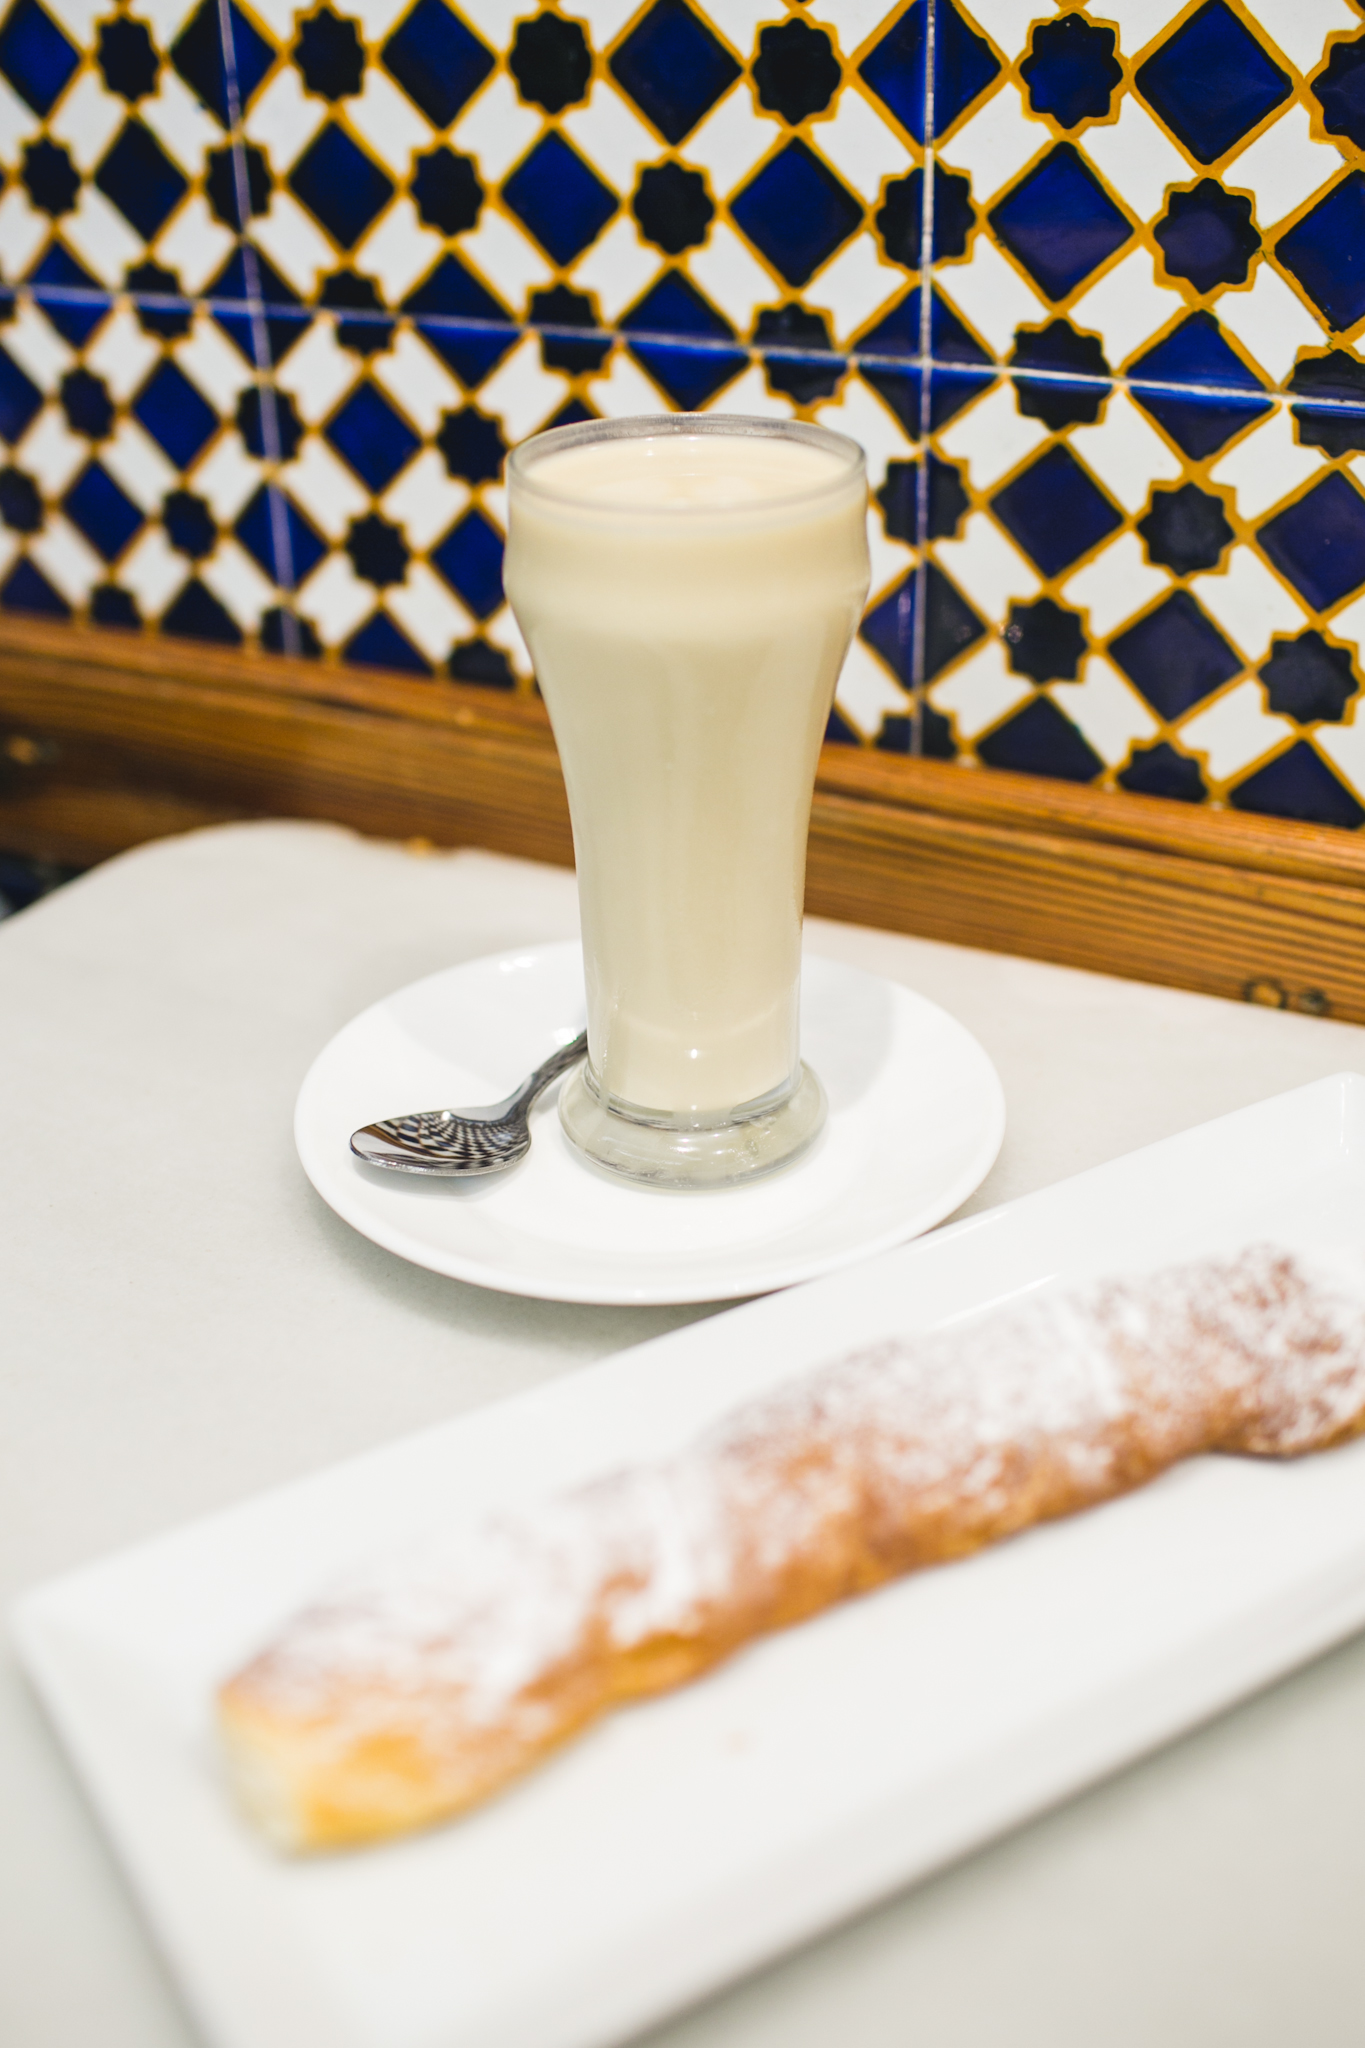 We also made a pit stop at the famous  Horchateria de Santa Catalina.  I'll be honest...I'm not sure I understand horchata. It tasted like milk with flour. That delicious piece of powdered bread though...Pretty damn good.  Thanks for reading! Stay tuned for the Part III travels to Seville, our favorite city.  xoxo, Hannah Q.